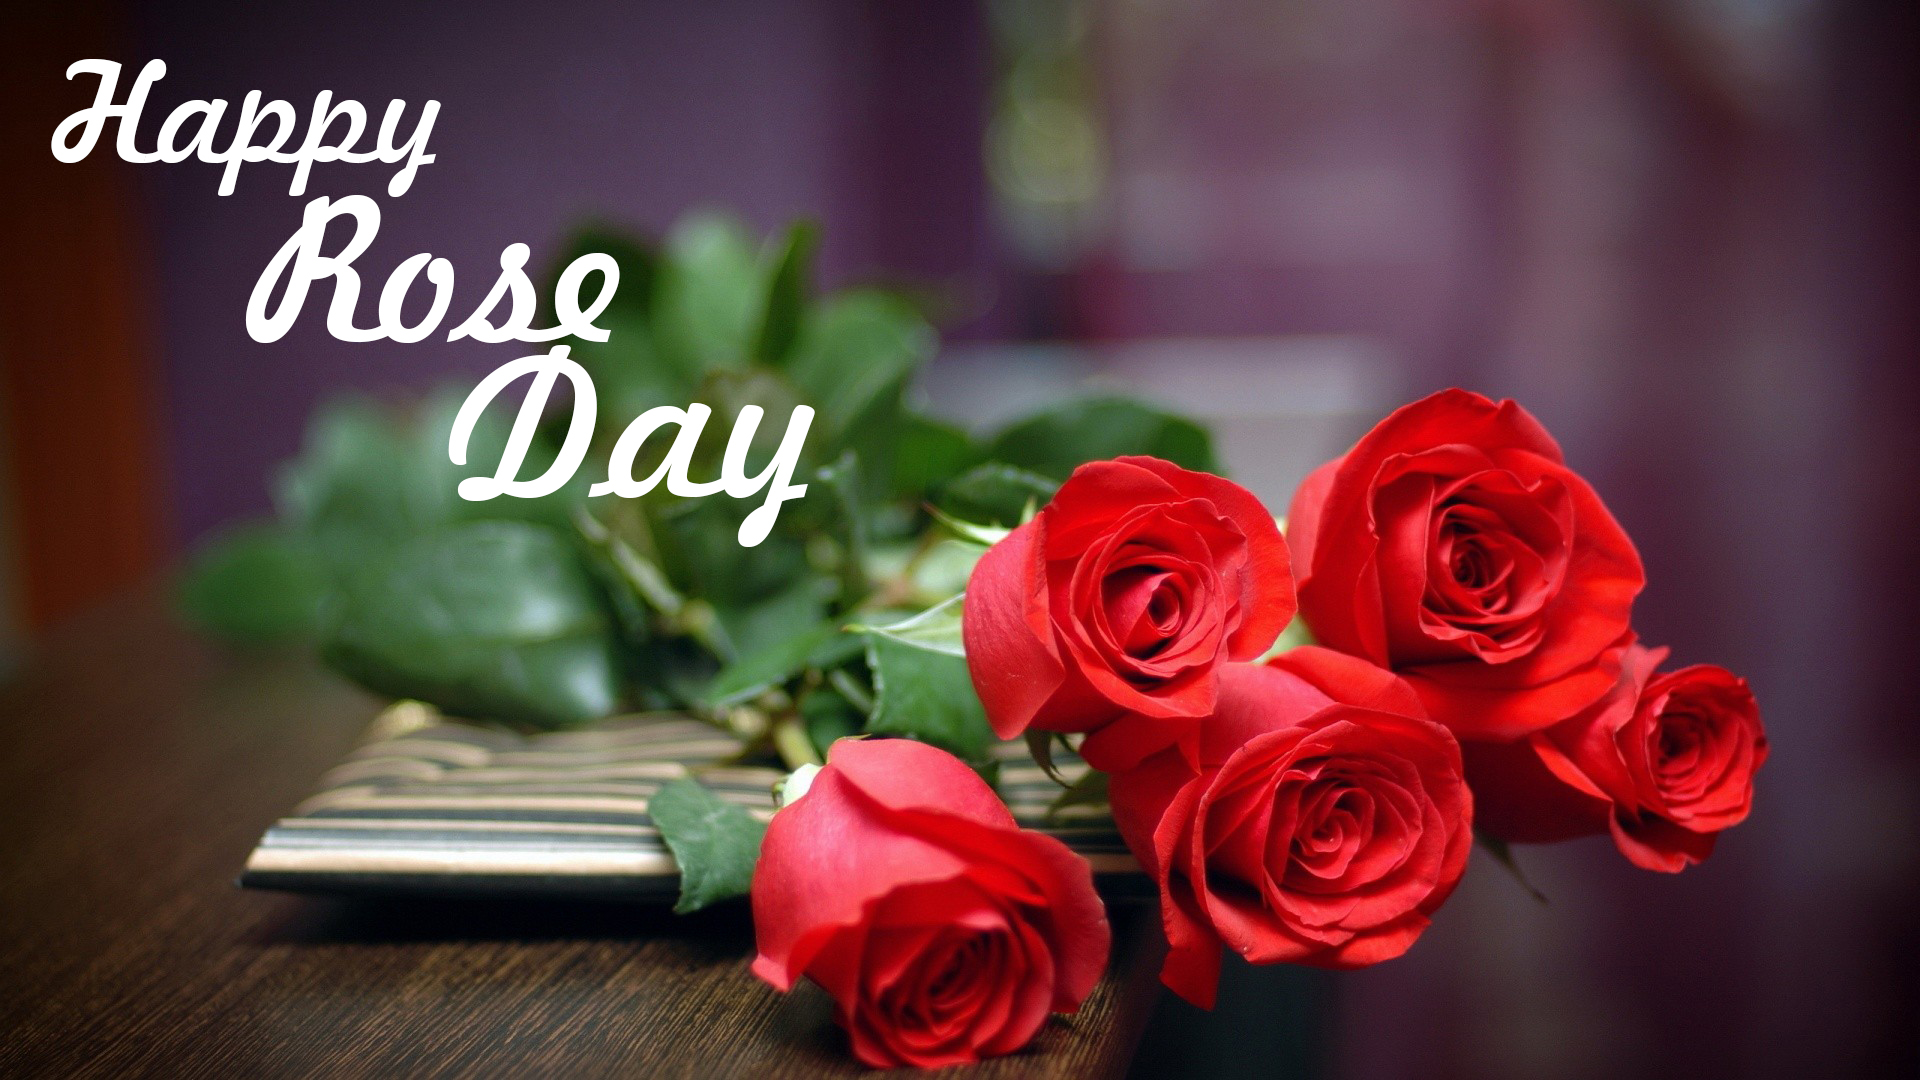 Rose Day Wallpapers and Beautiful Image 2020